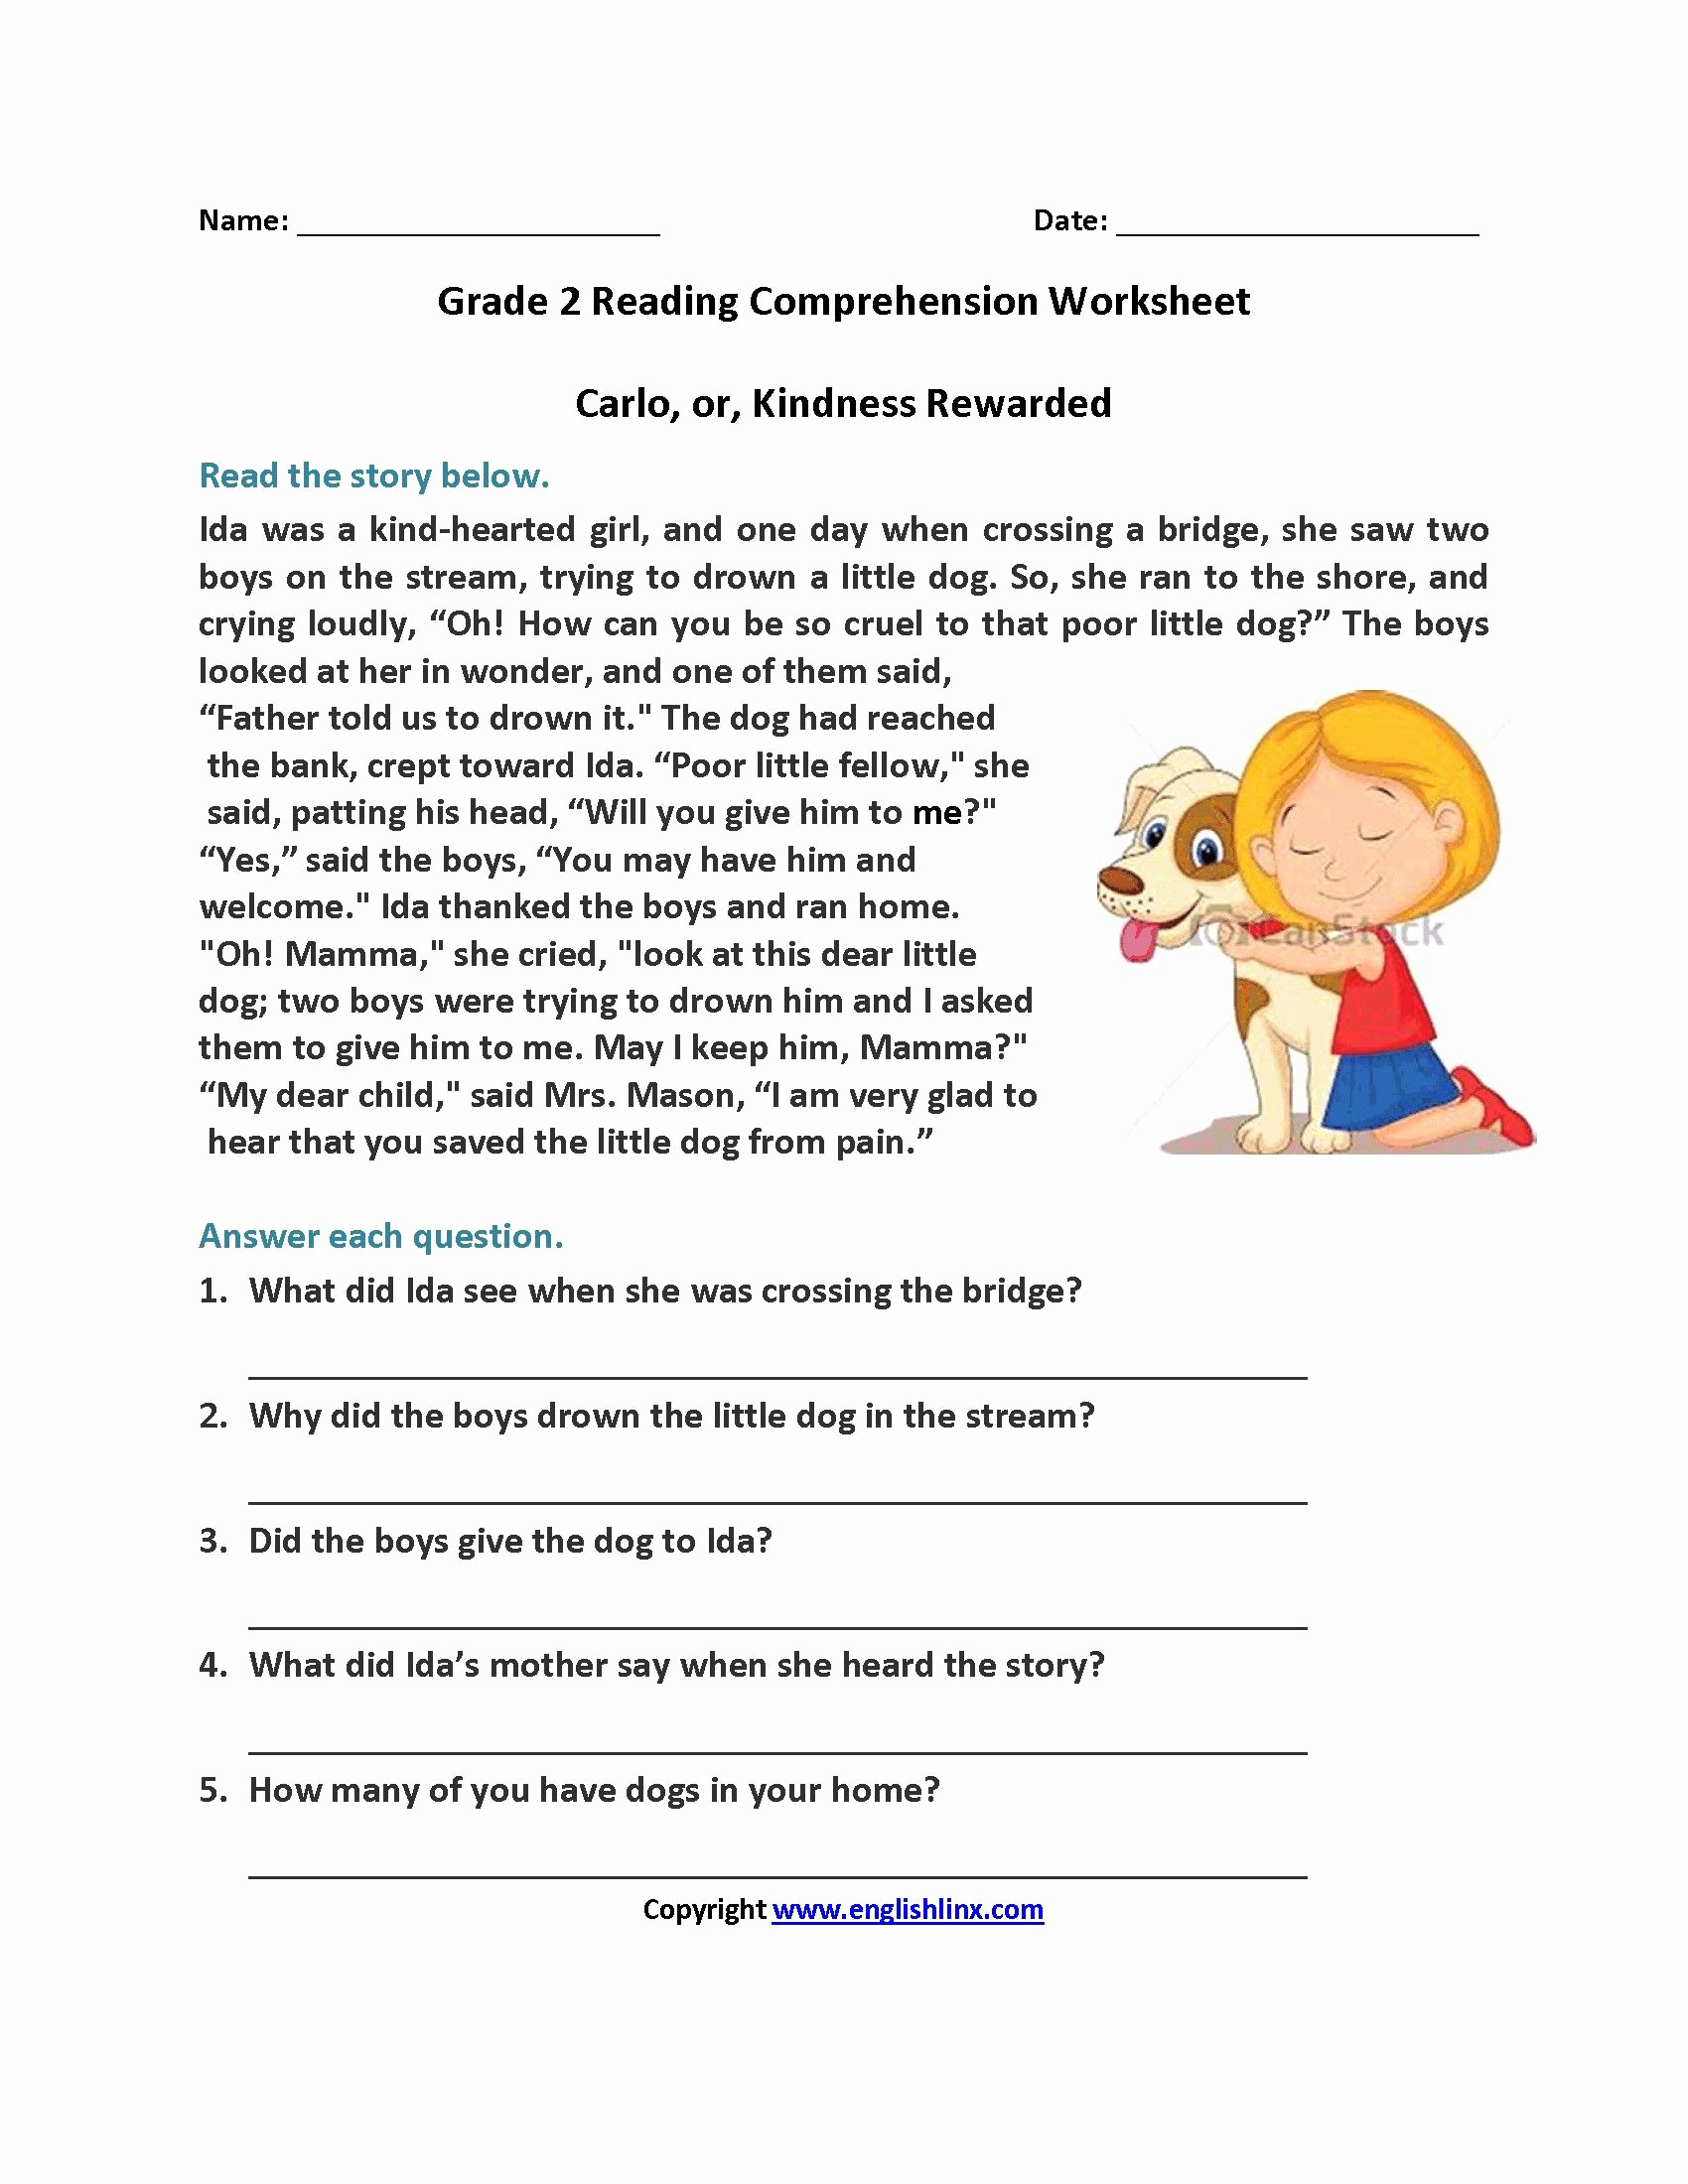 Character Traits Worksheet 2nd Grade New 20 Character Traits Worksheet 2nd Grade